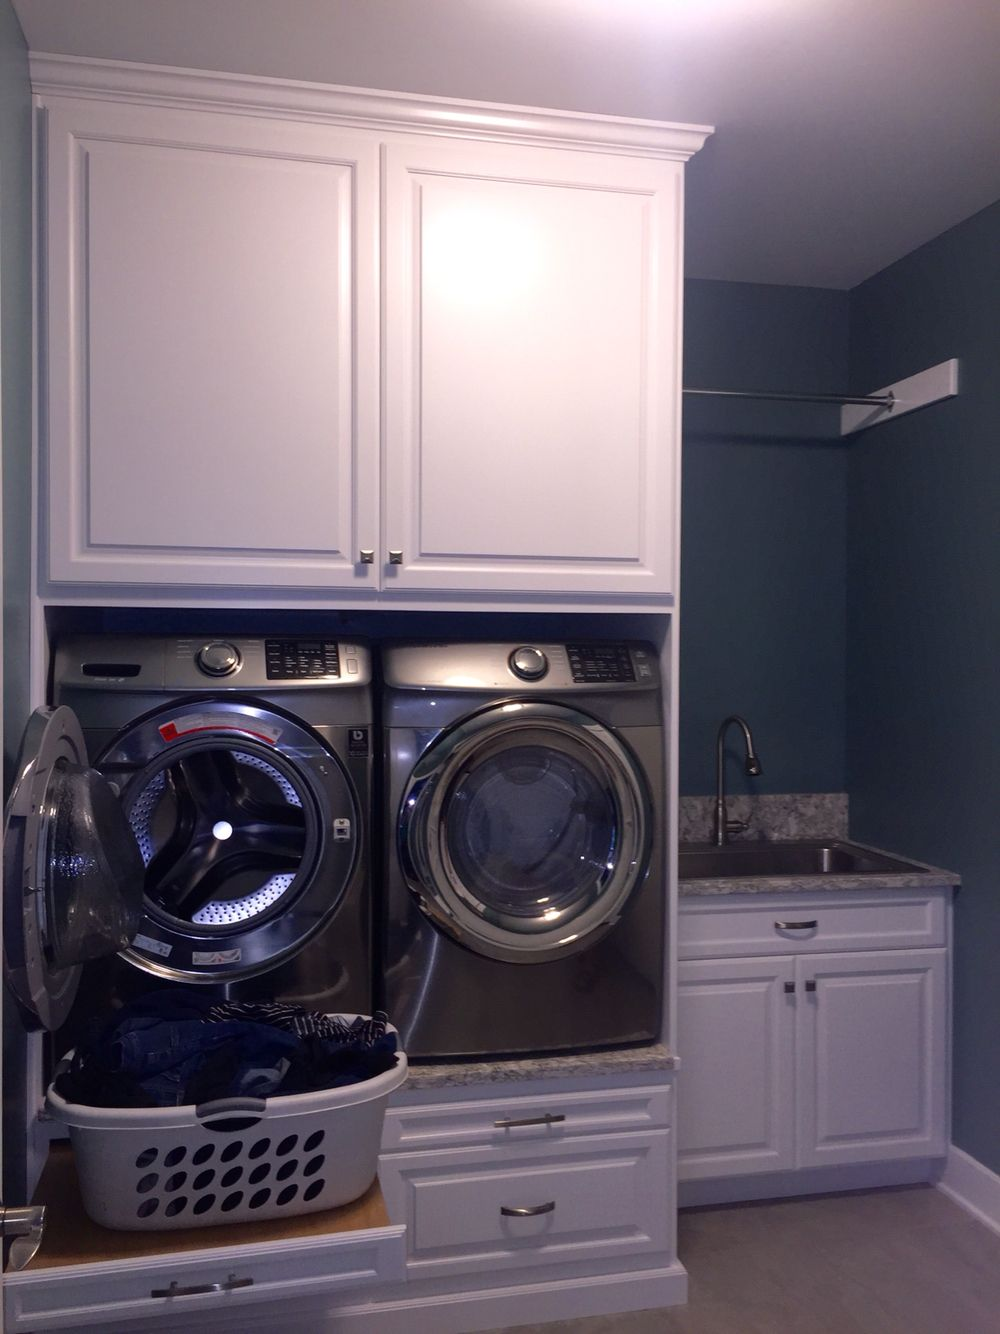 Laundry Room Color Is Sherwin Williams Moody Blue And Backsplash Is Cambria  Berwyn Quartz. Build Ins Were Made By Glicks Custom Cabinets.